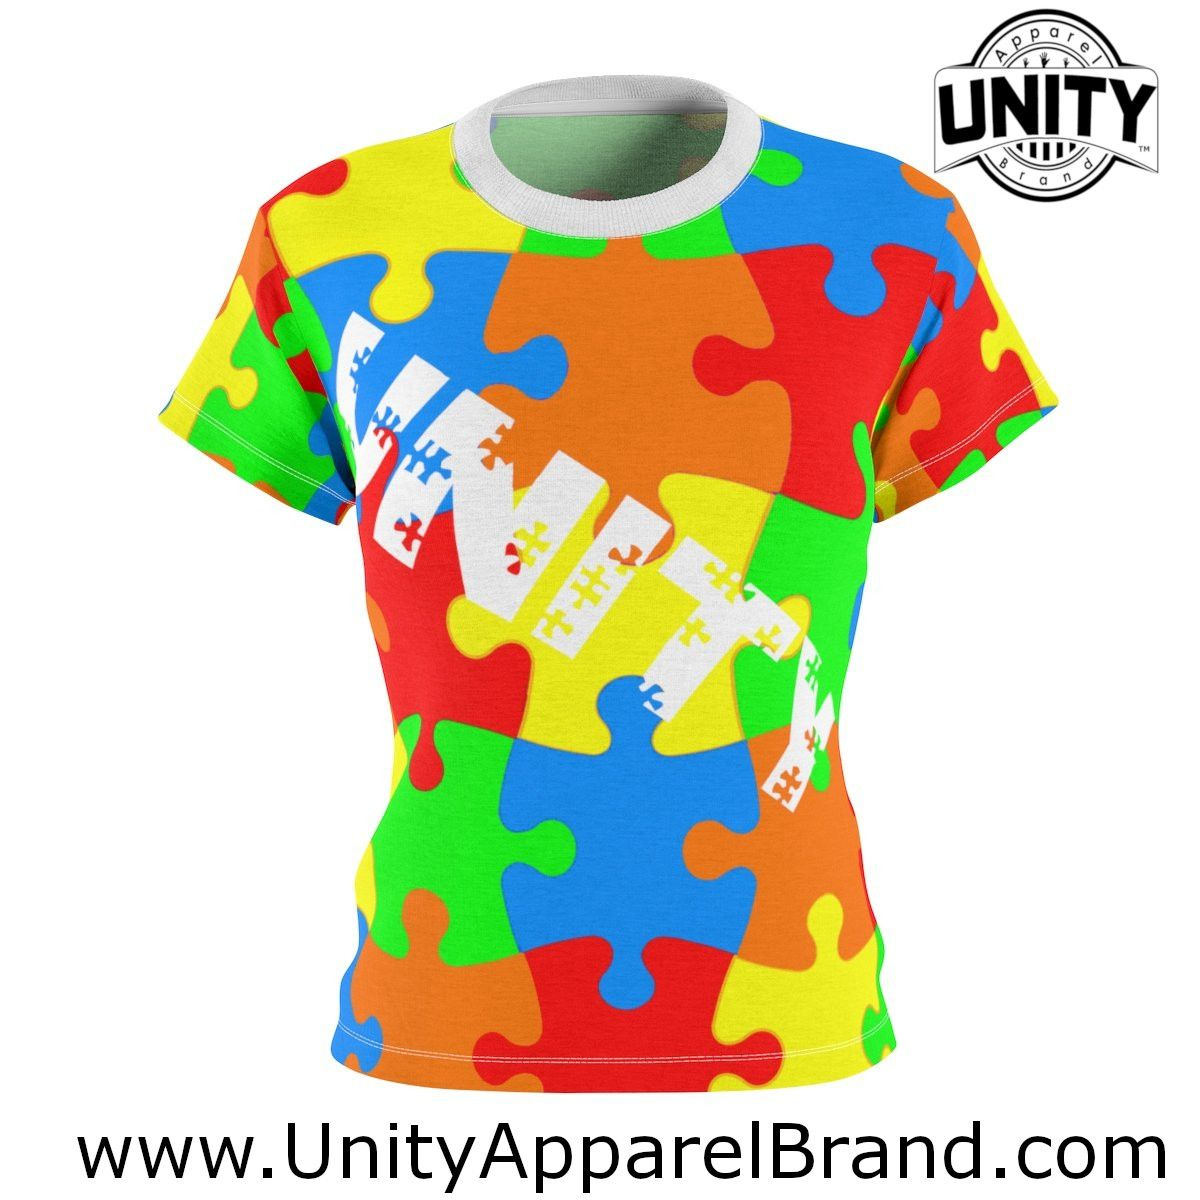 d0b55f1481b Women's Fashion Autism awareness Women's Top clothing Designed For Autism  Awareness charity. Unity Apparel Brand